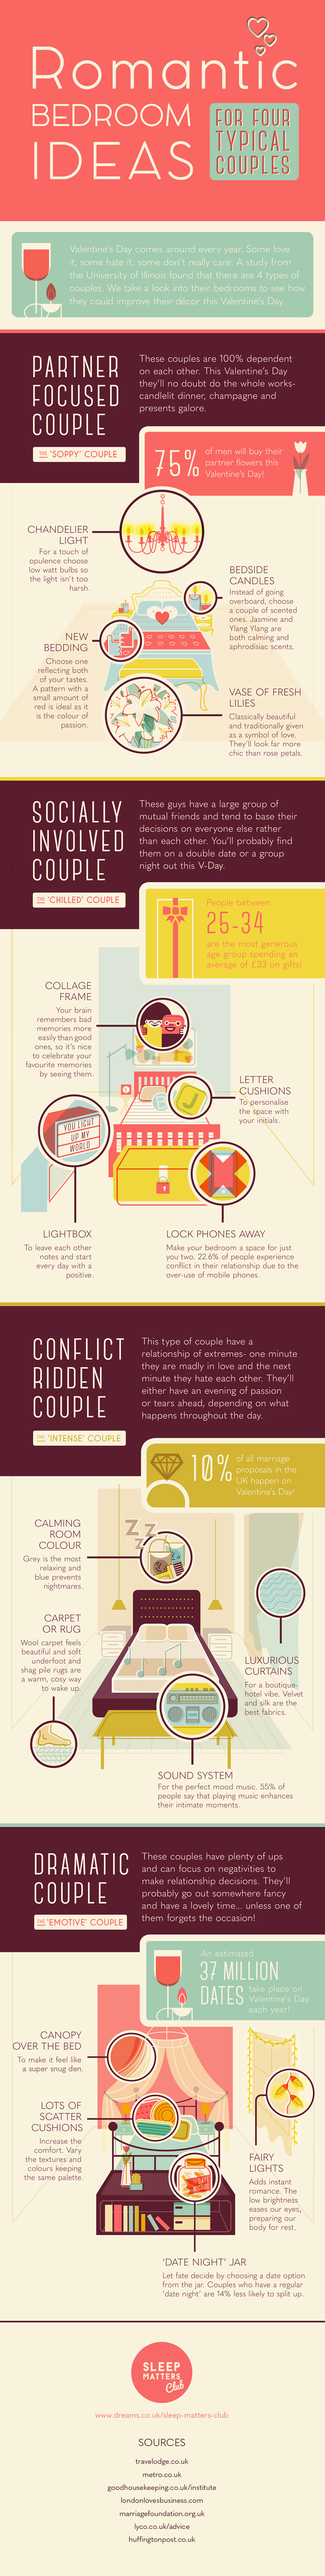 4 Types of Couples and Romantic Décor Ideas for Their Bedrooms - Infographic